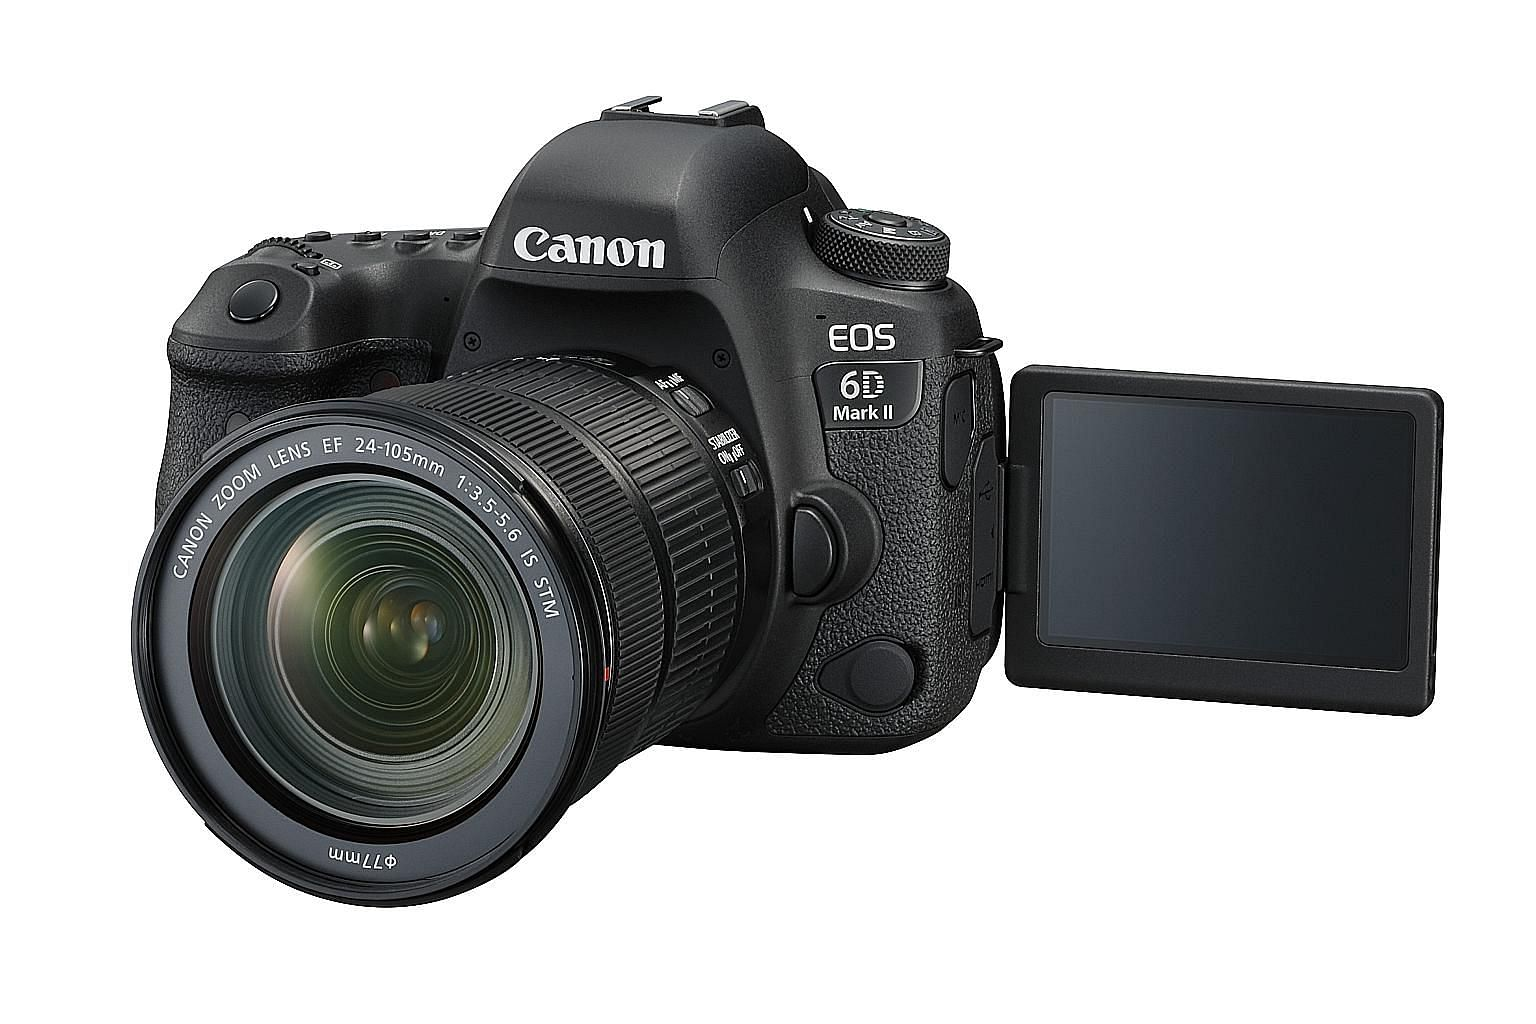 Better shooting speed, more autofocusing points and excellent battery life are among the stand-out features of the Canon EOS 6D Mark II.